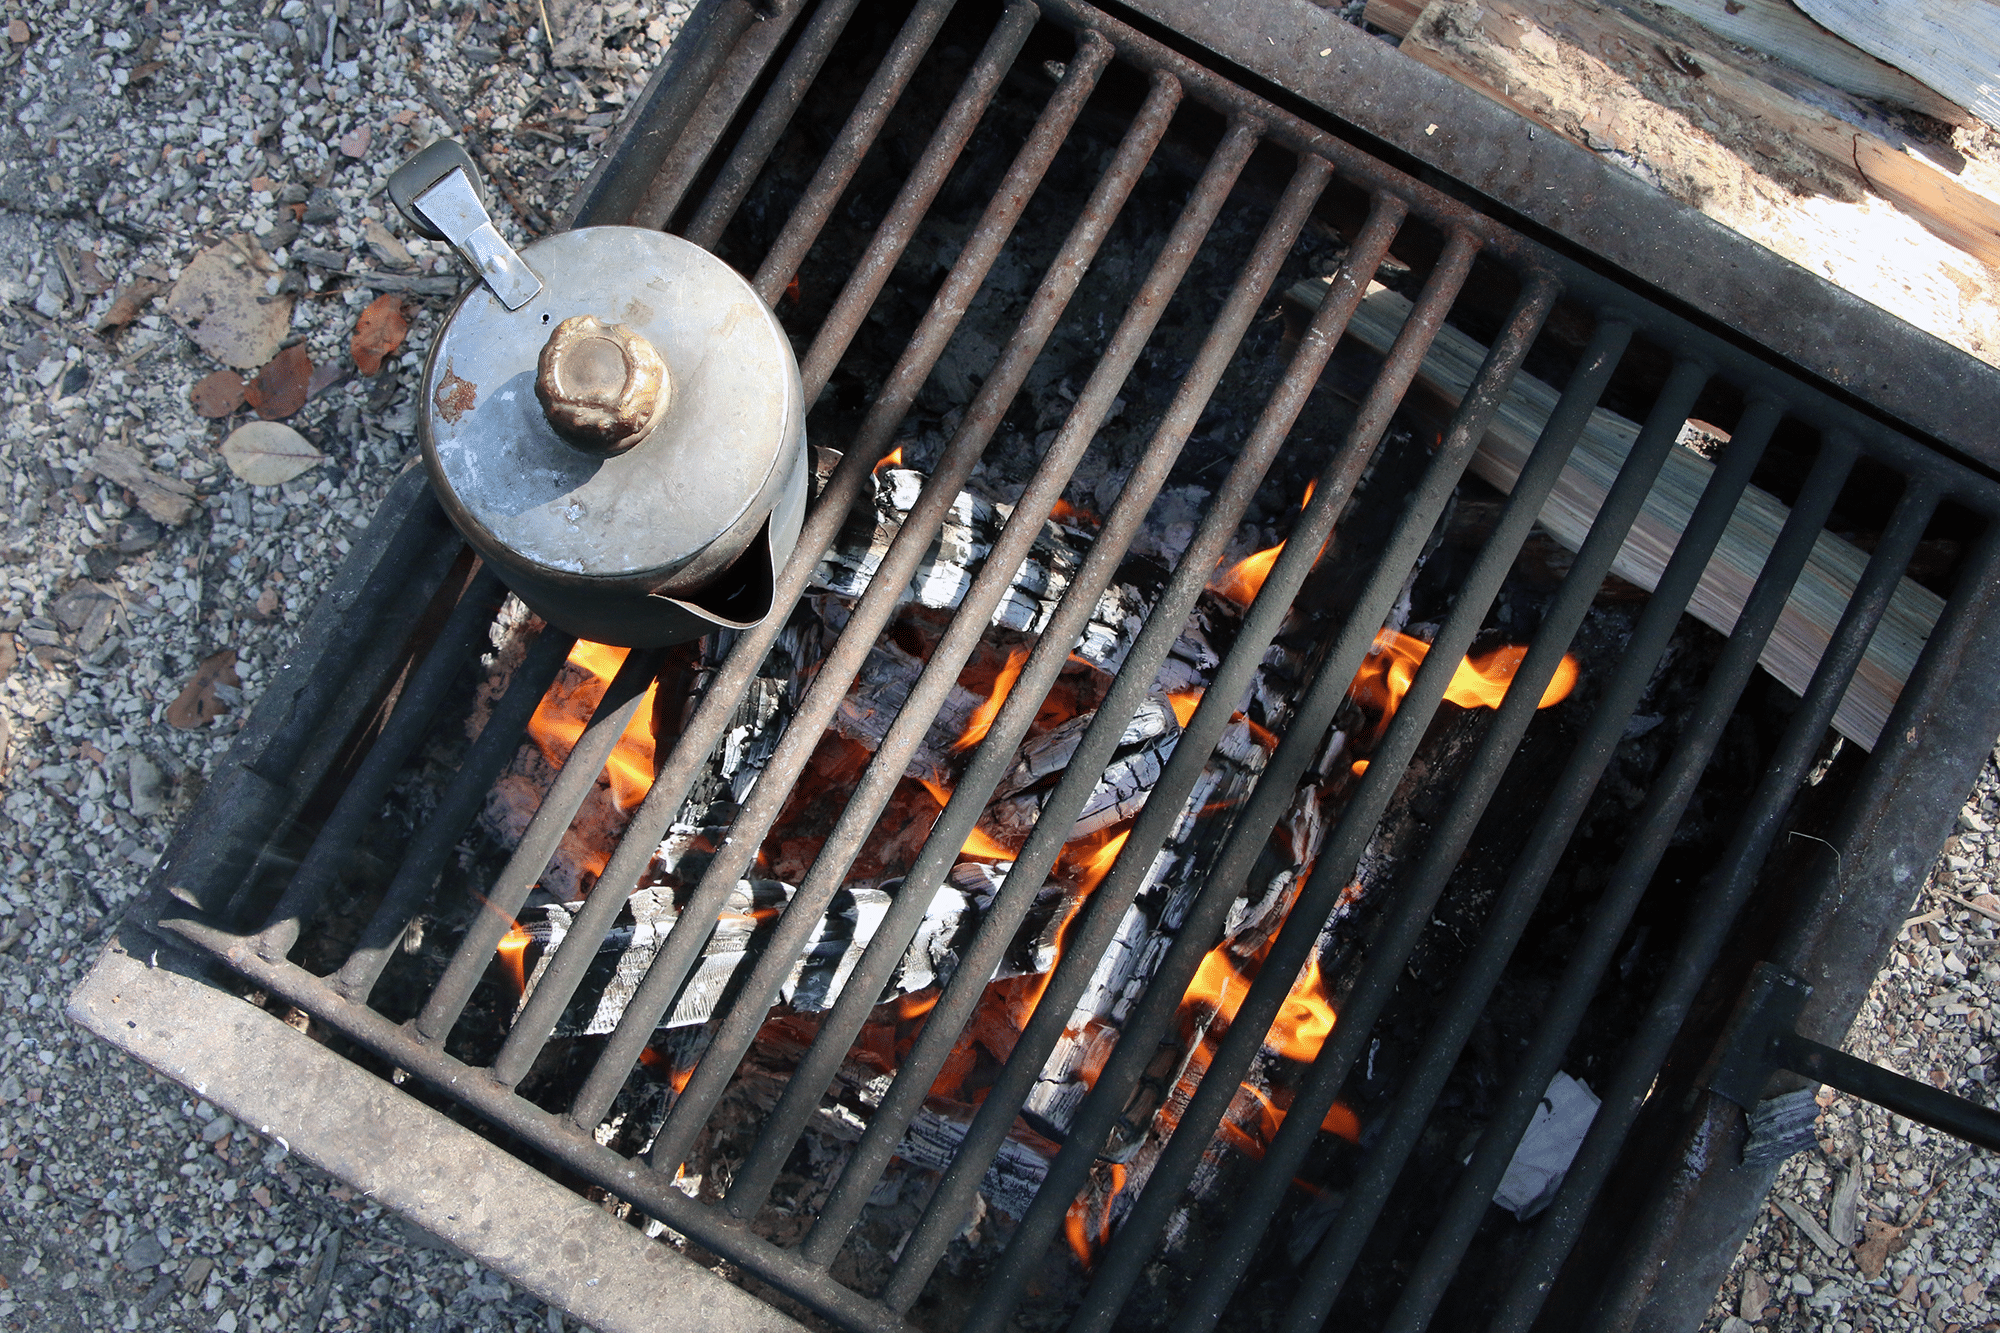 An old kettle sits on the rack of the firepit.